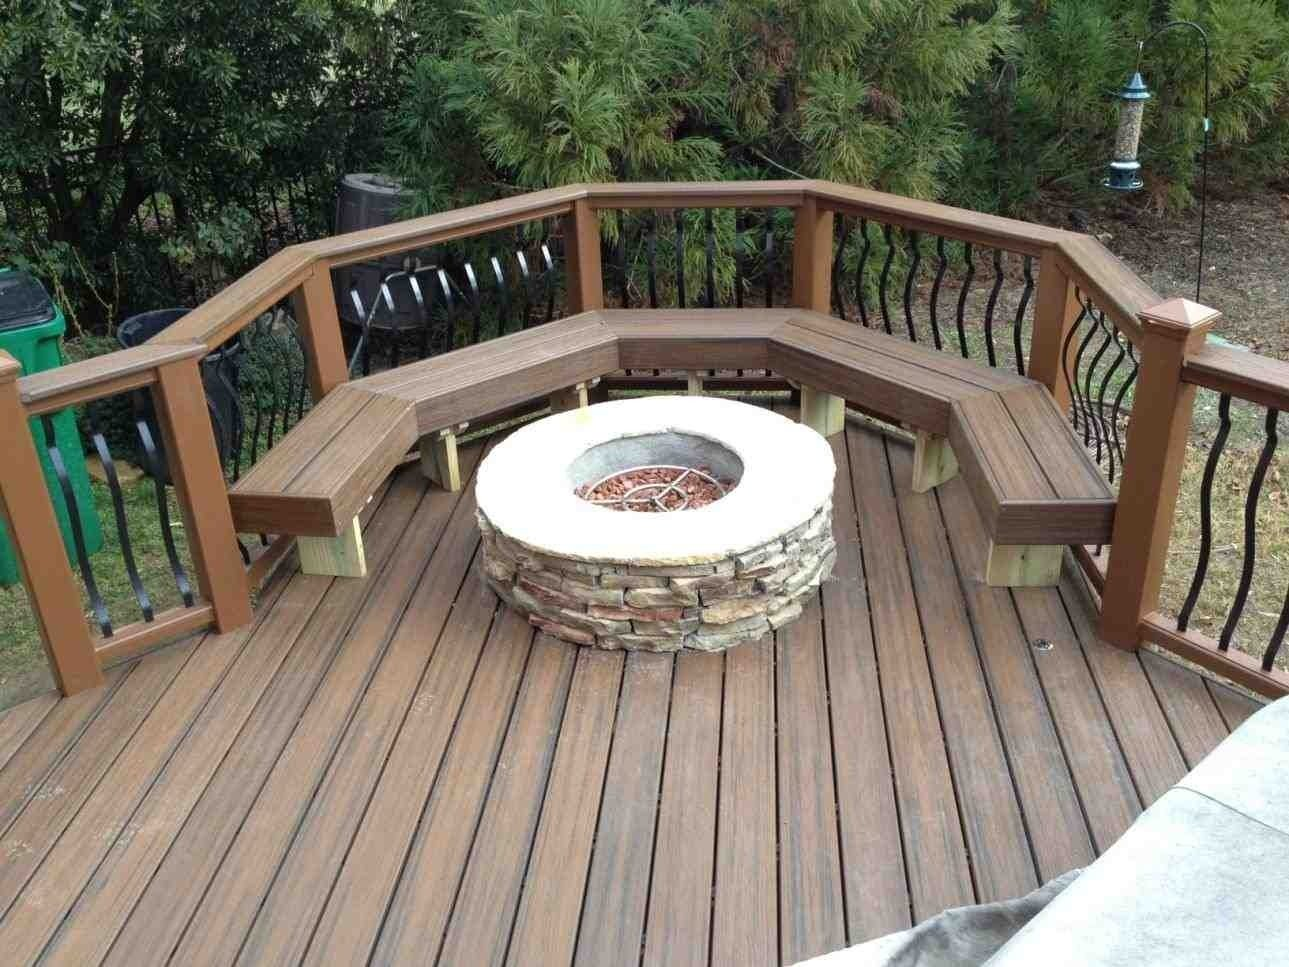 10 Stylish Deck Ideas With Fire Pit deck ideas with fire pit homedesignlatest site 2021